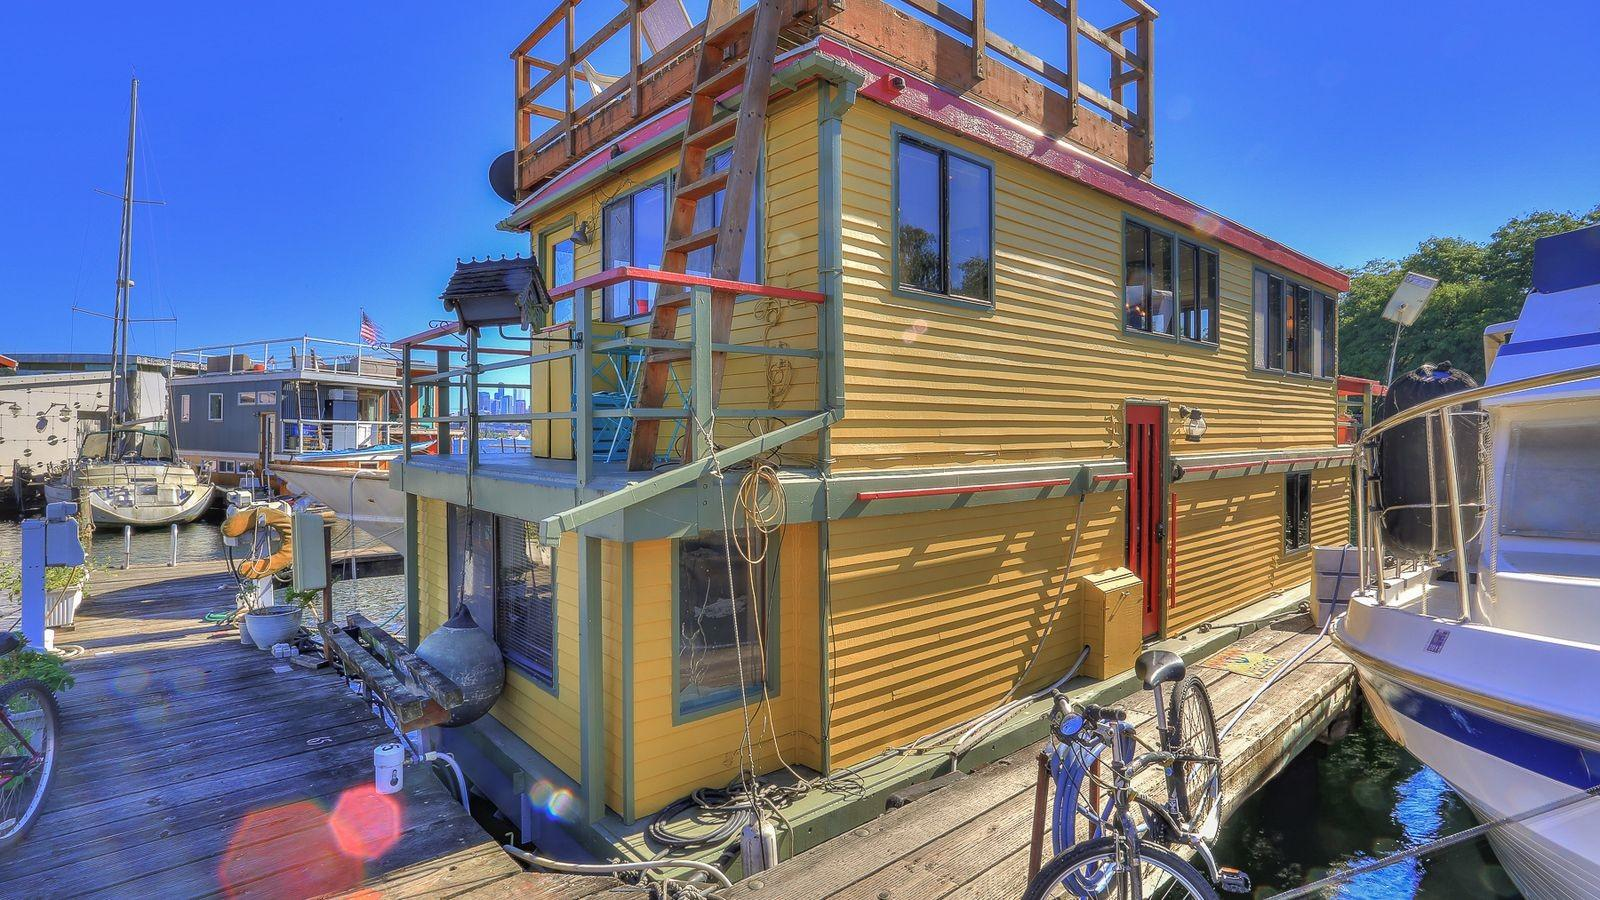 Colorful Lake Union House Barge Space Needle Views